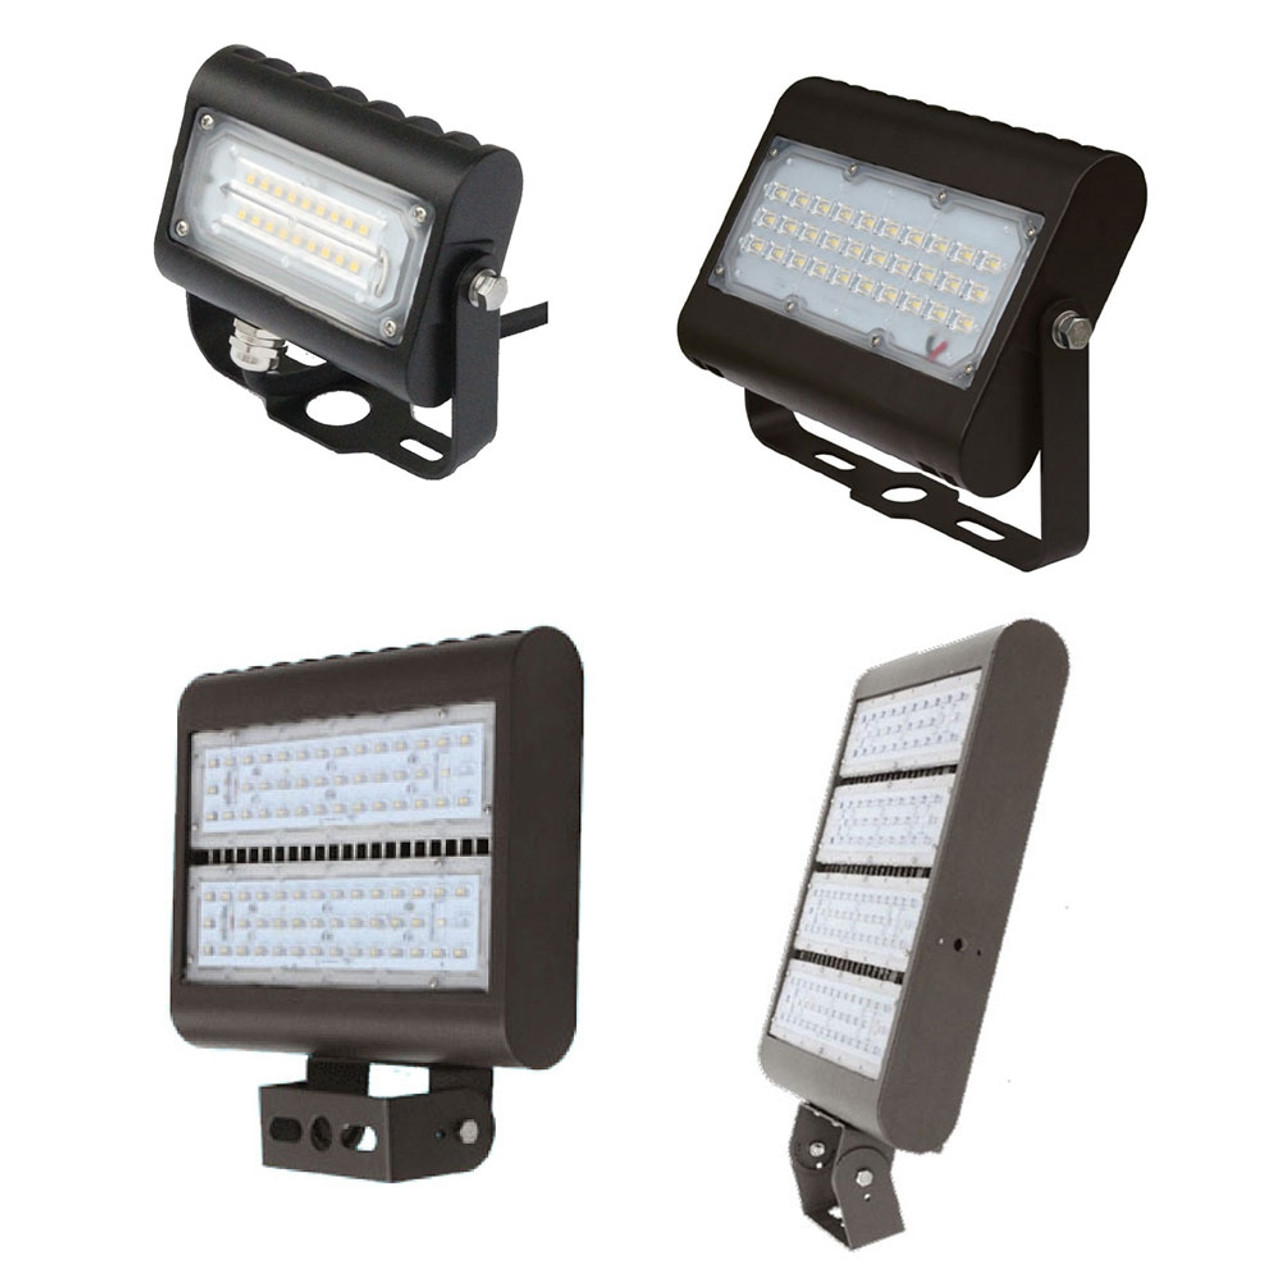 Led Outdoor Flood Light Fixtures For Area Parking And Landscape Lighting Choose Your Wattage And Mount